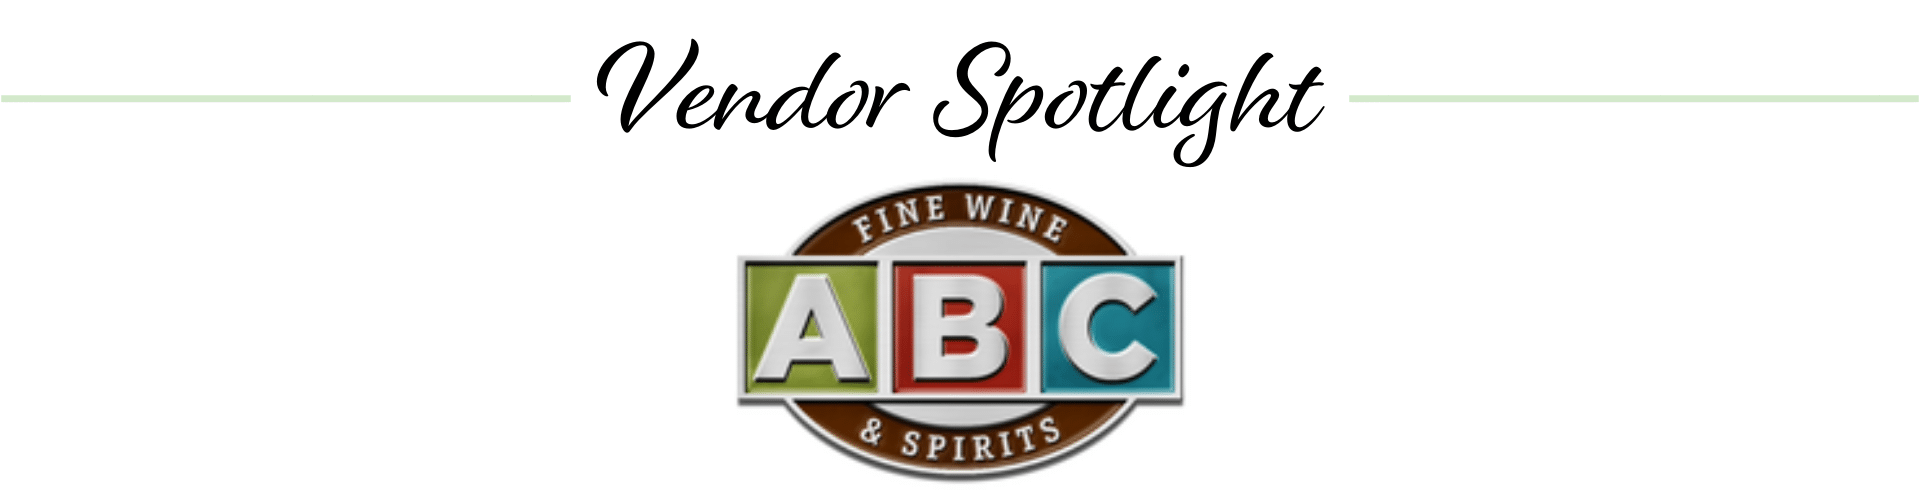 ABC Fine Wine & Spirits logo